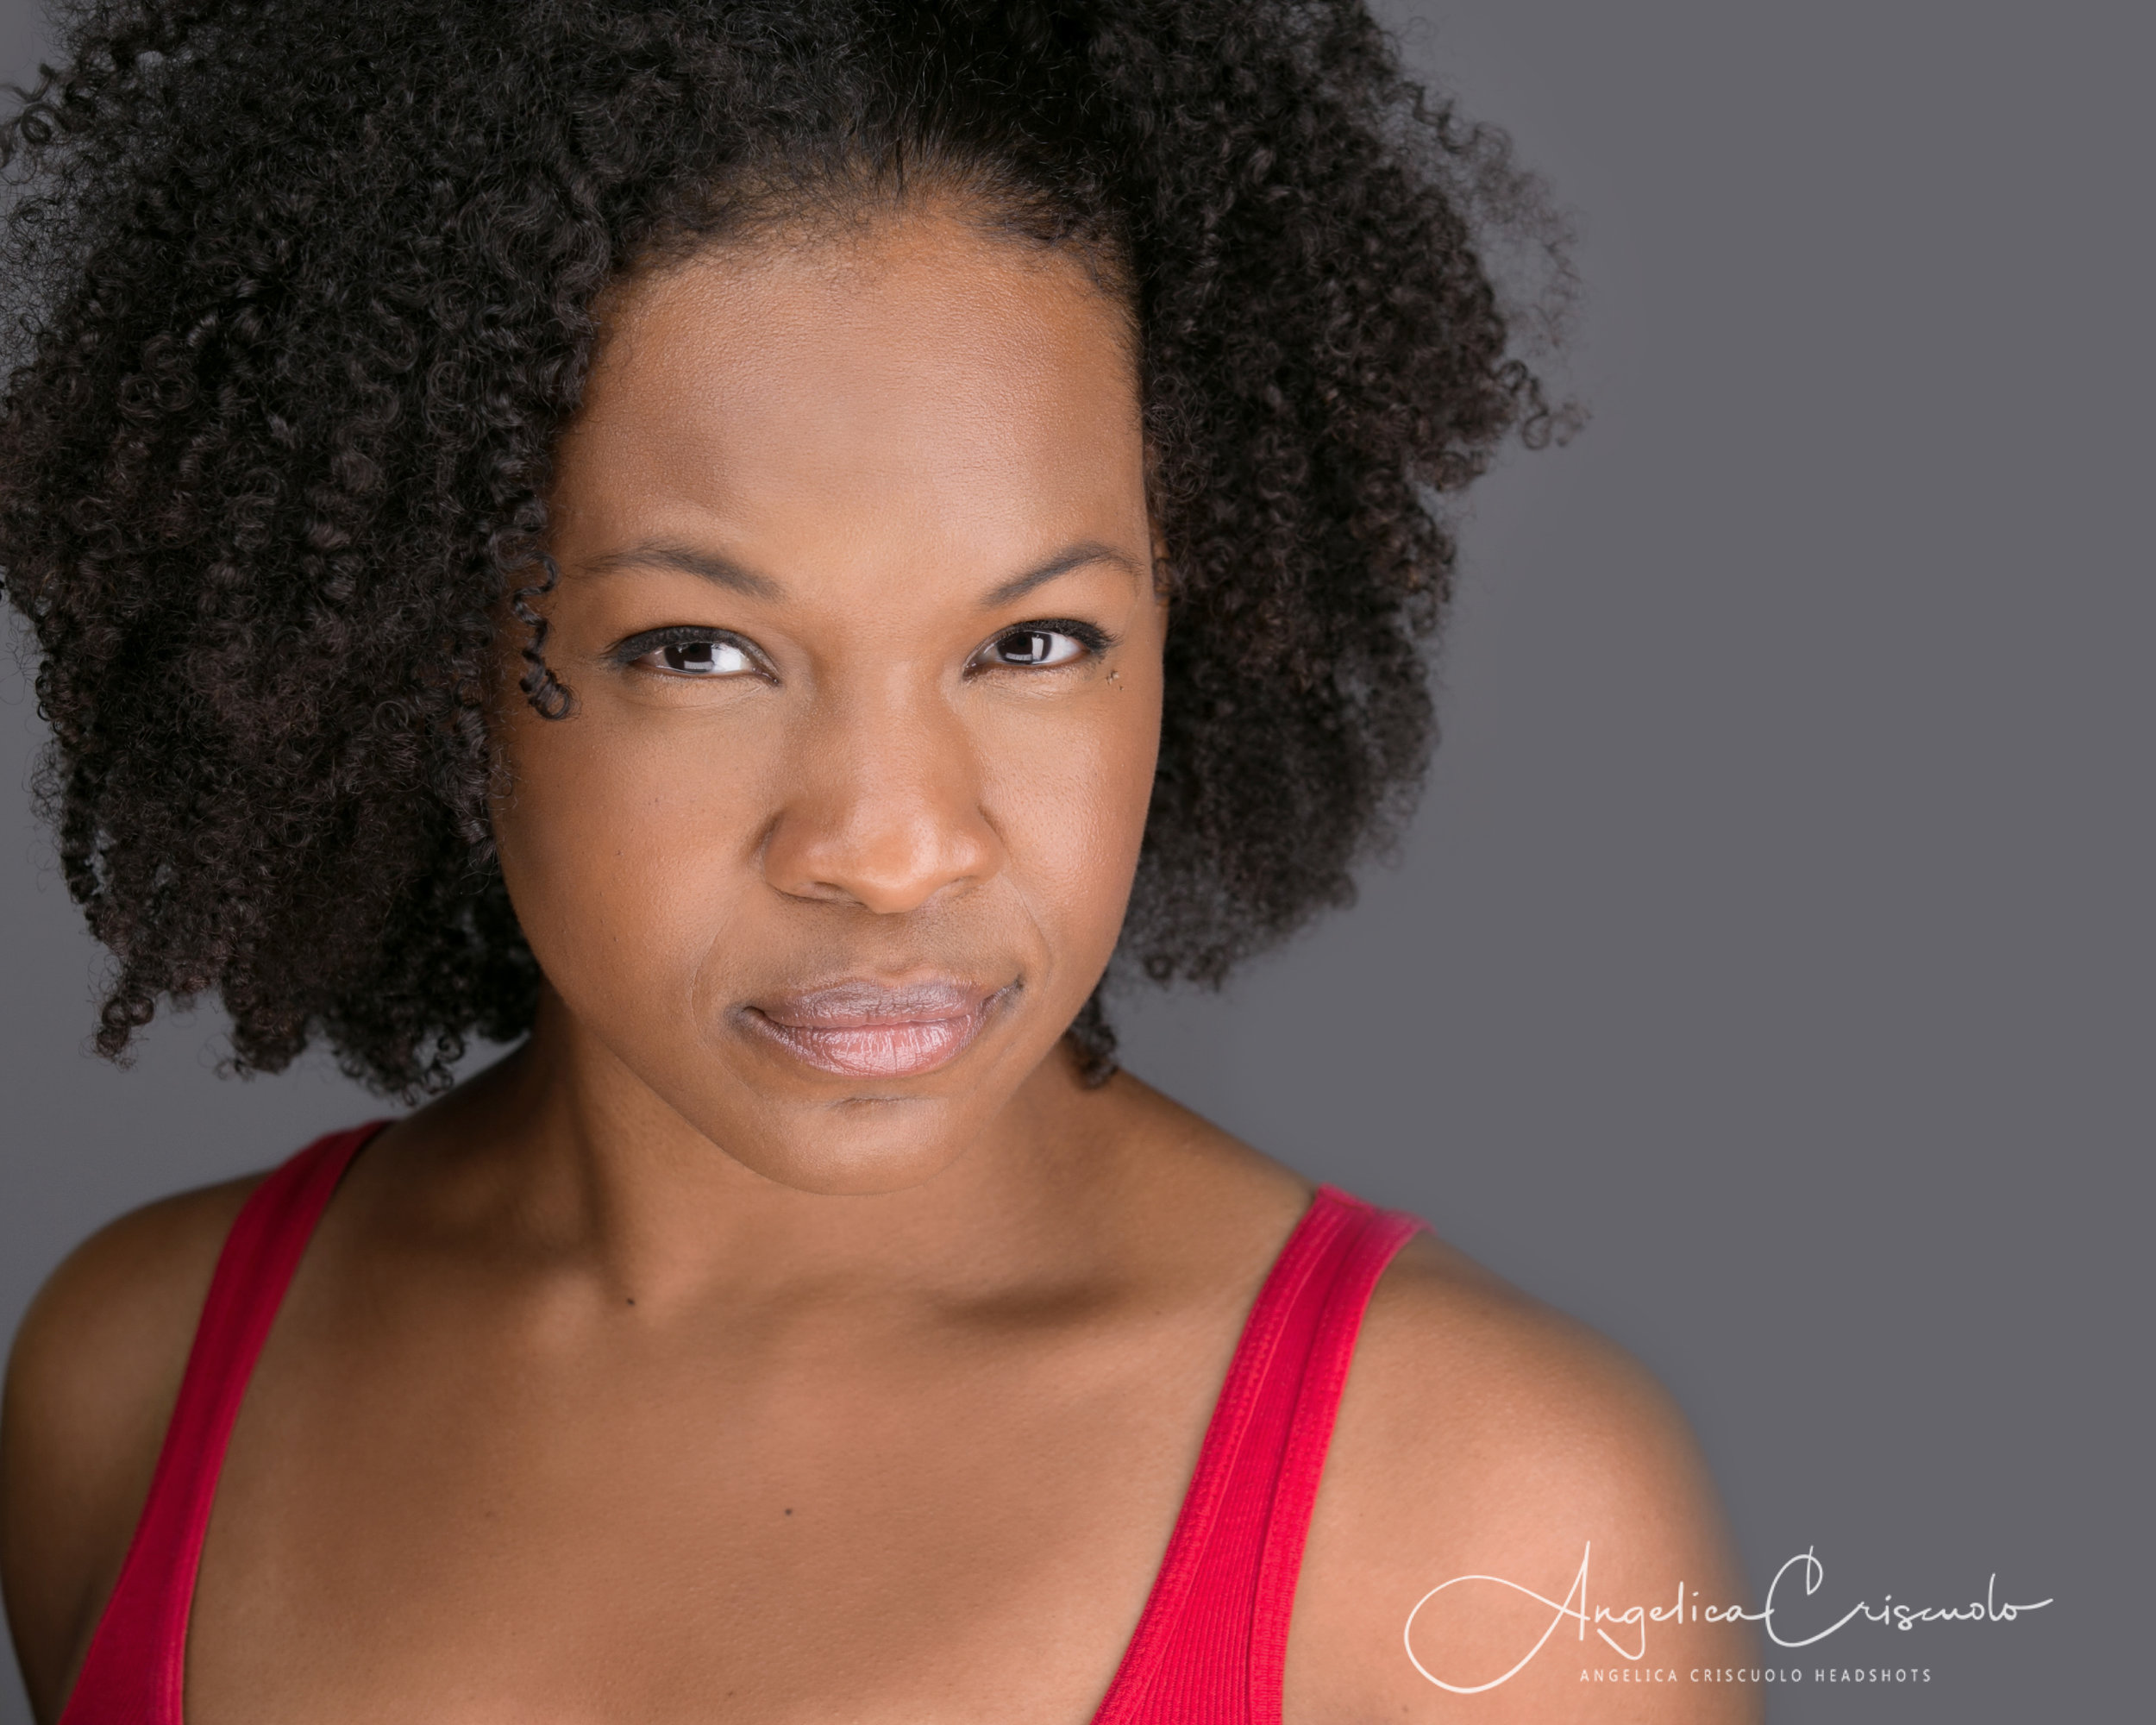 NYC headshot photographer for casting directors and talent agents